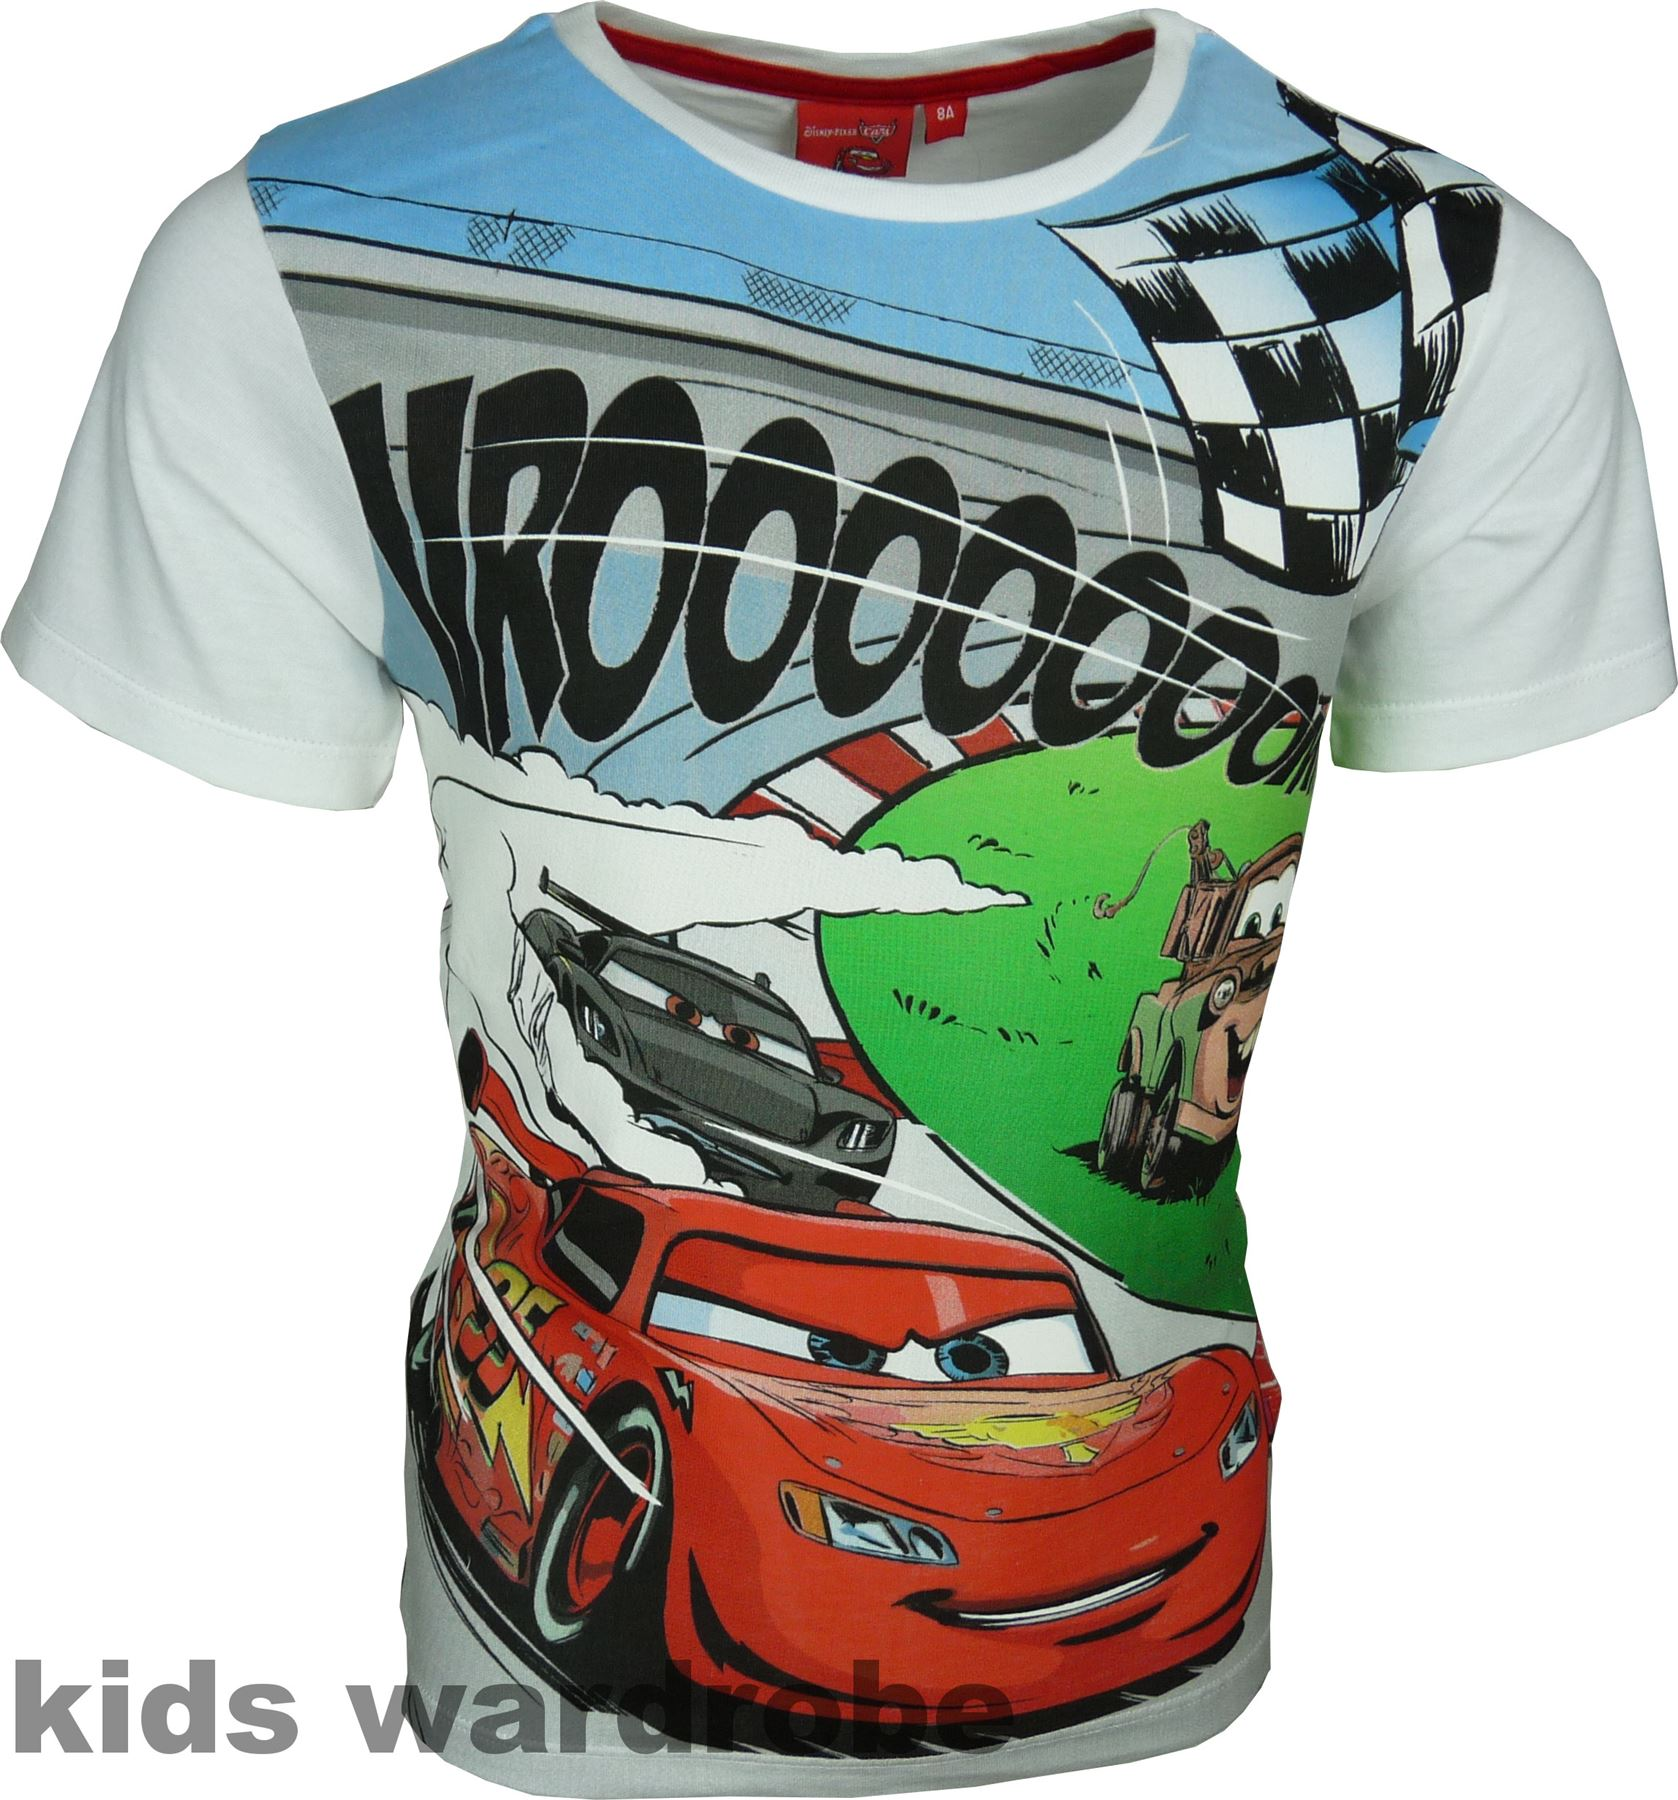 Jungen T-shirt Disney Cars Mickey Mouse Planes Minions